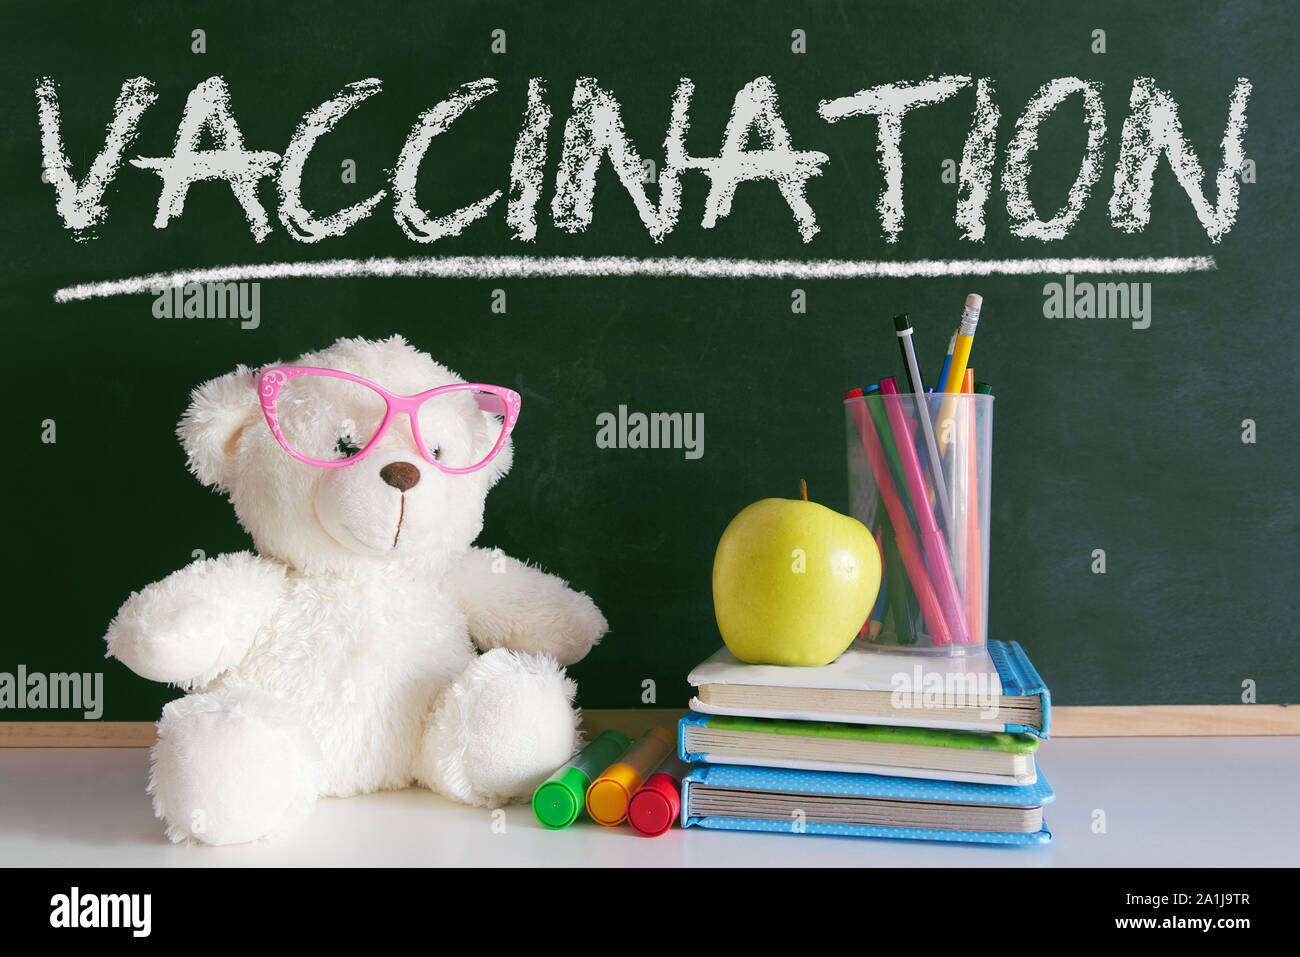 Teddy bear next to a pile of books and an apple in a classroom. Blackboard for the vaccination period concept at school. Stock Photo